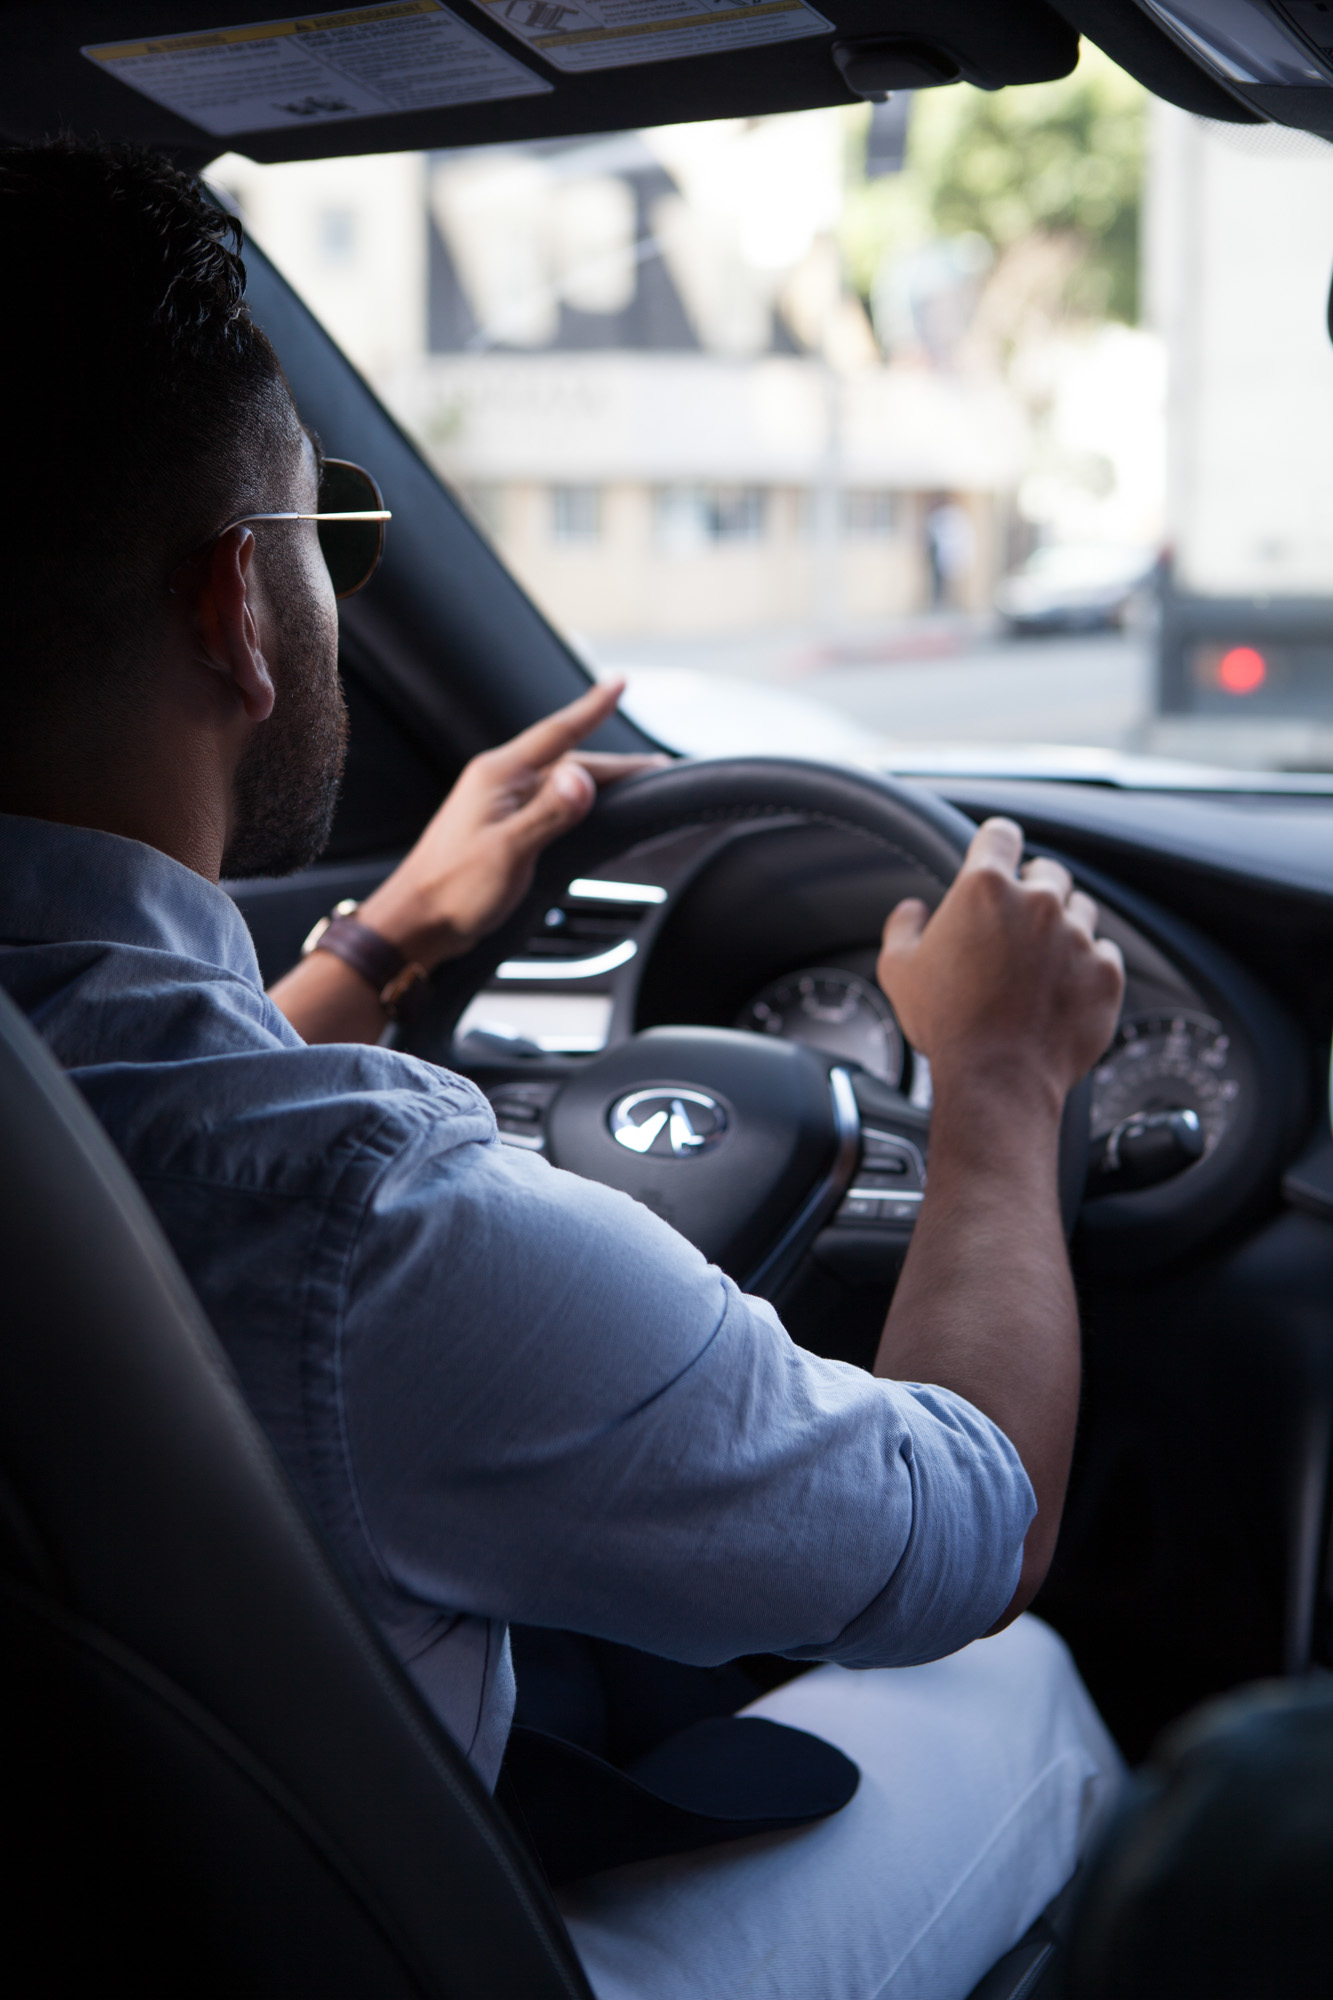 J Fig - @rule_of_thumbs driving Infiniti QX-50 | Car Photography | Commercial Photography shot in Los Angeles, California for Crispin Porter + Bogusky